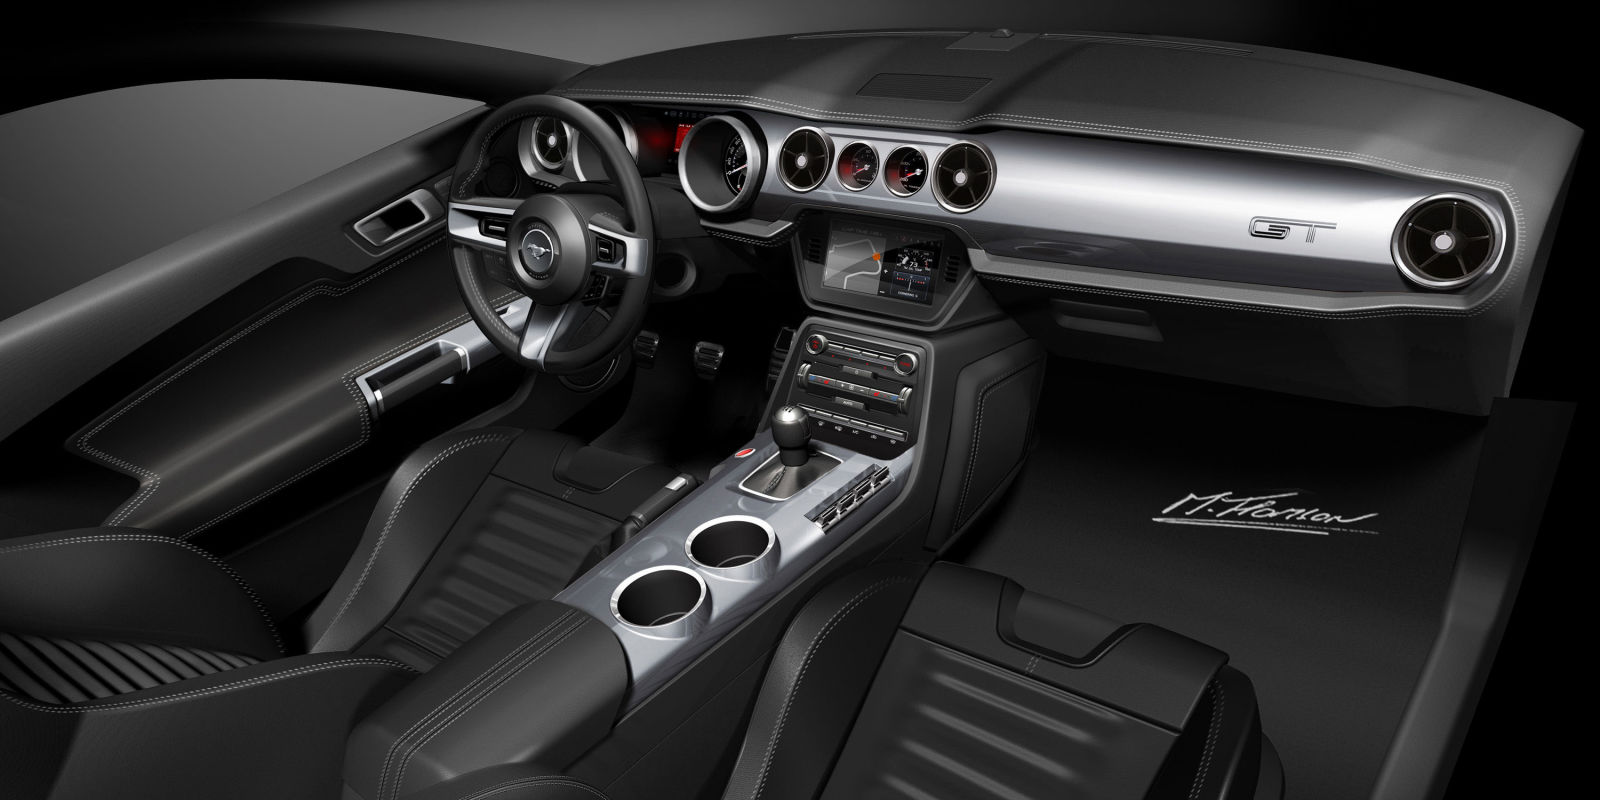 How Designers Created The 2015 Ford Mustang Interior